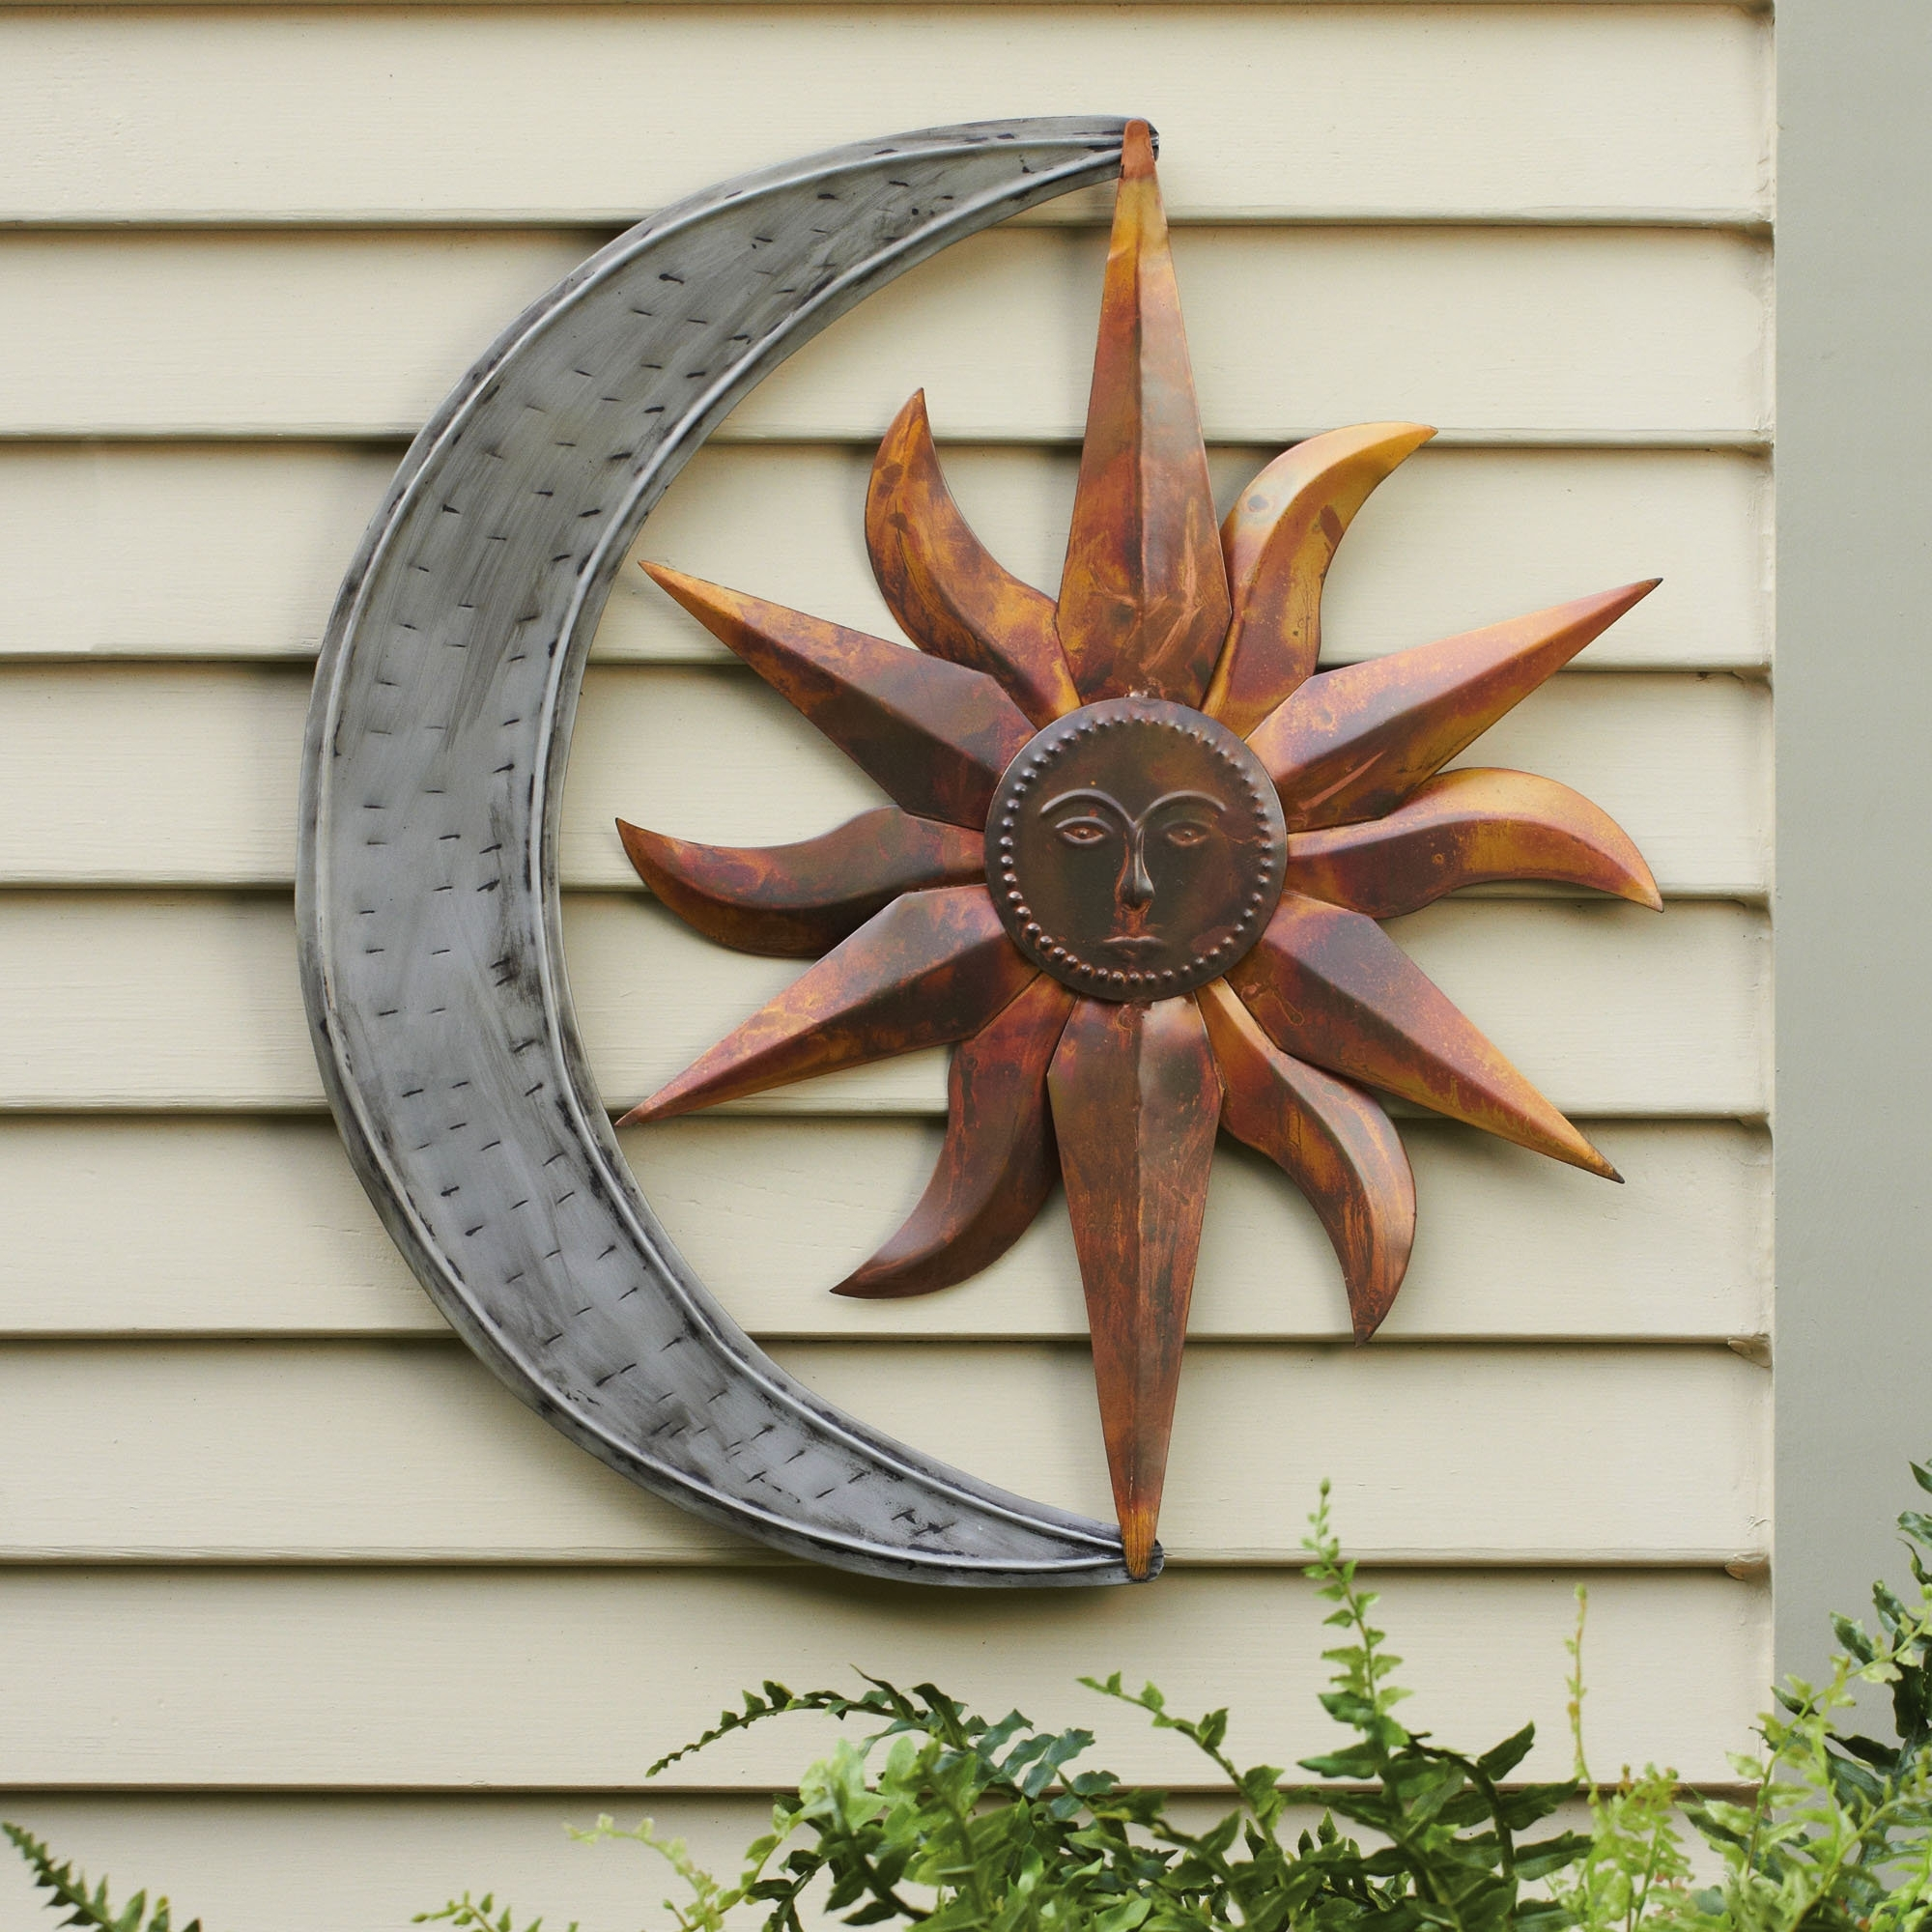 Wall Art Designs: Outdoor Wall Art Decor Wall Plaques And Metal Within Best And Newest Outdoor Wall Sculpture Art (View 13 of 15)